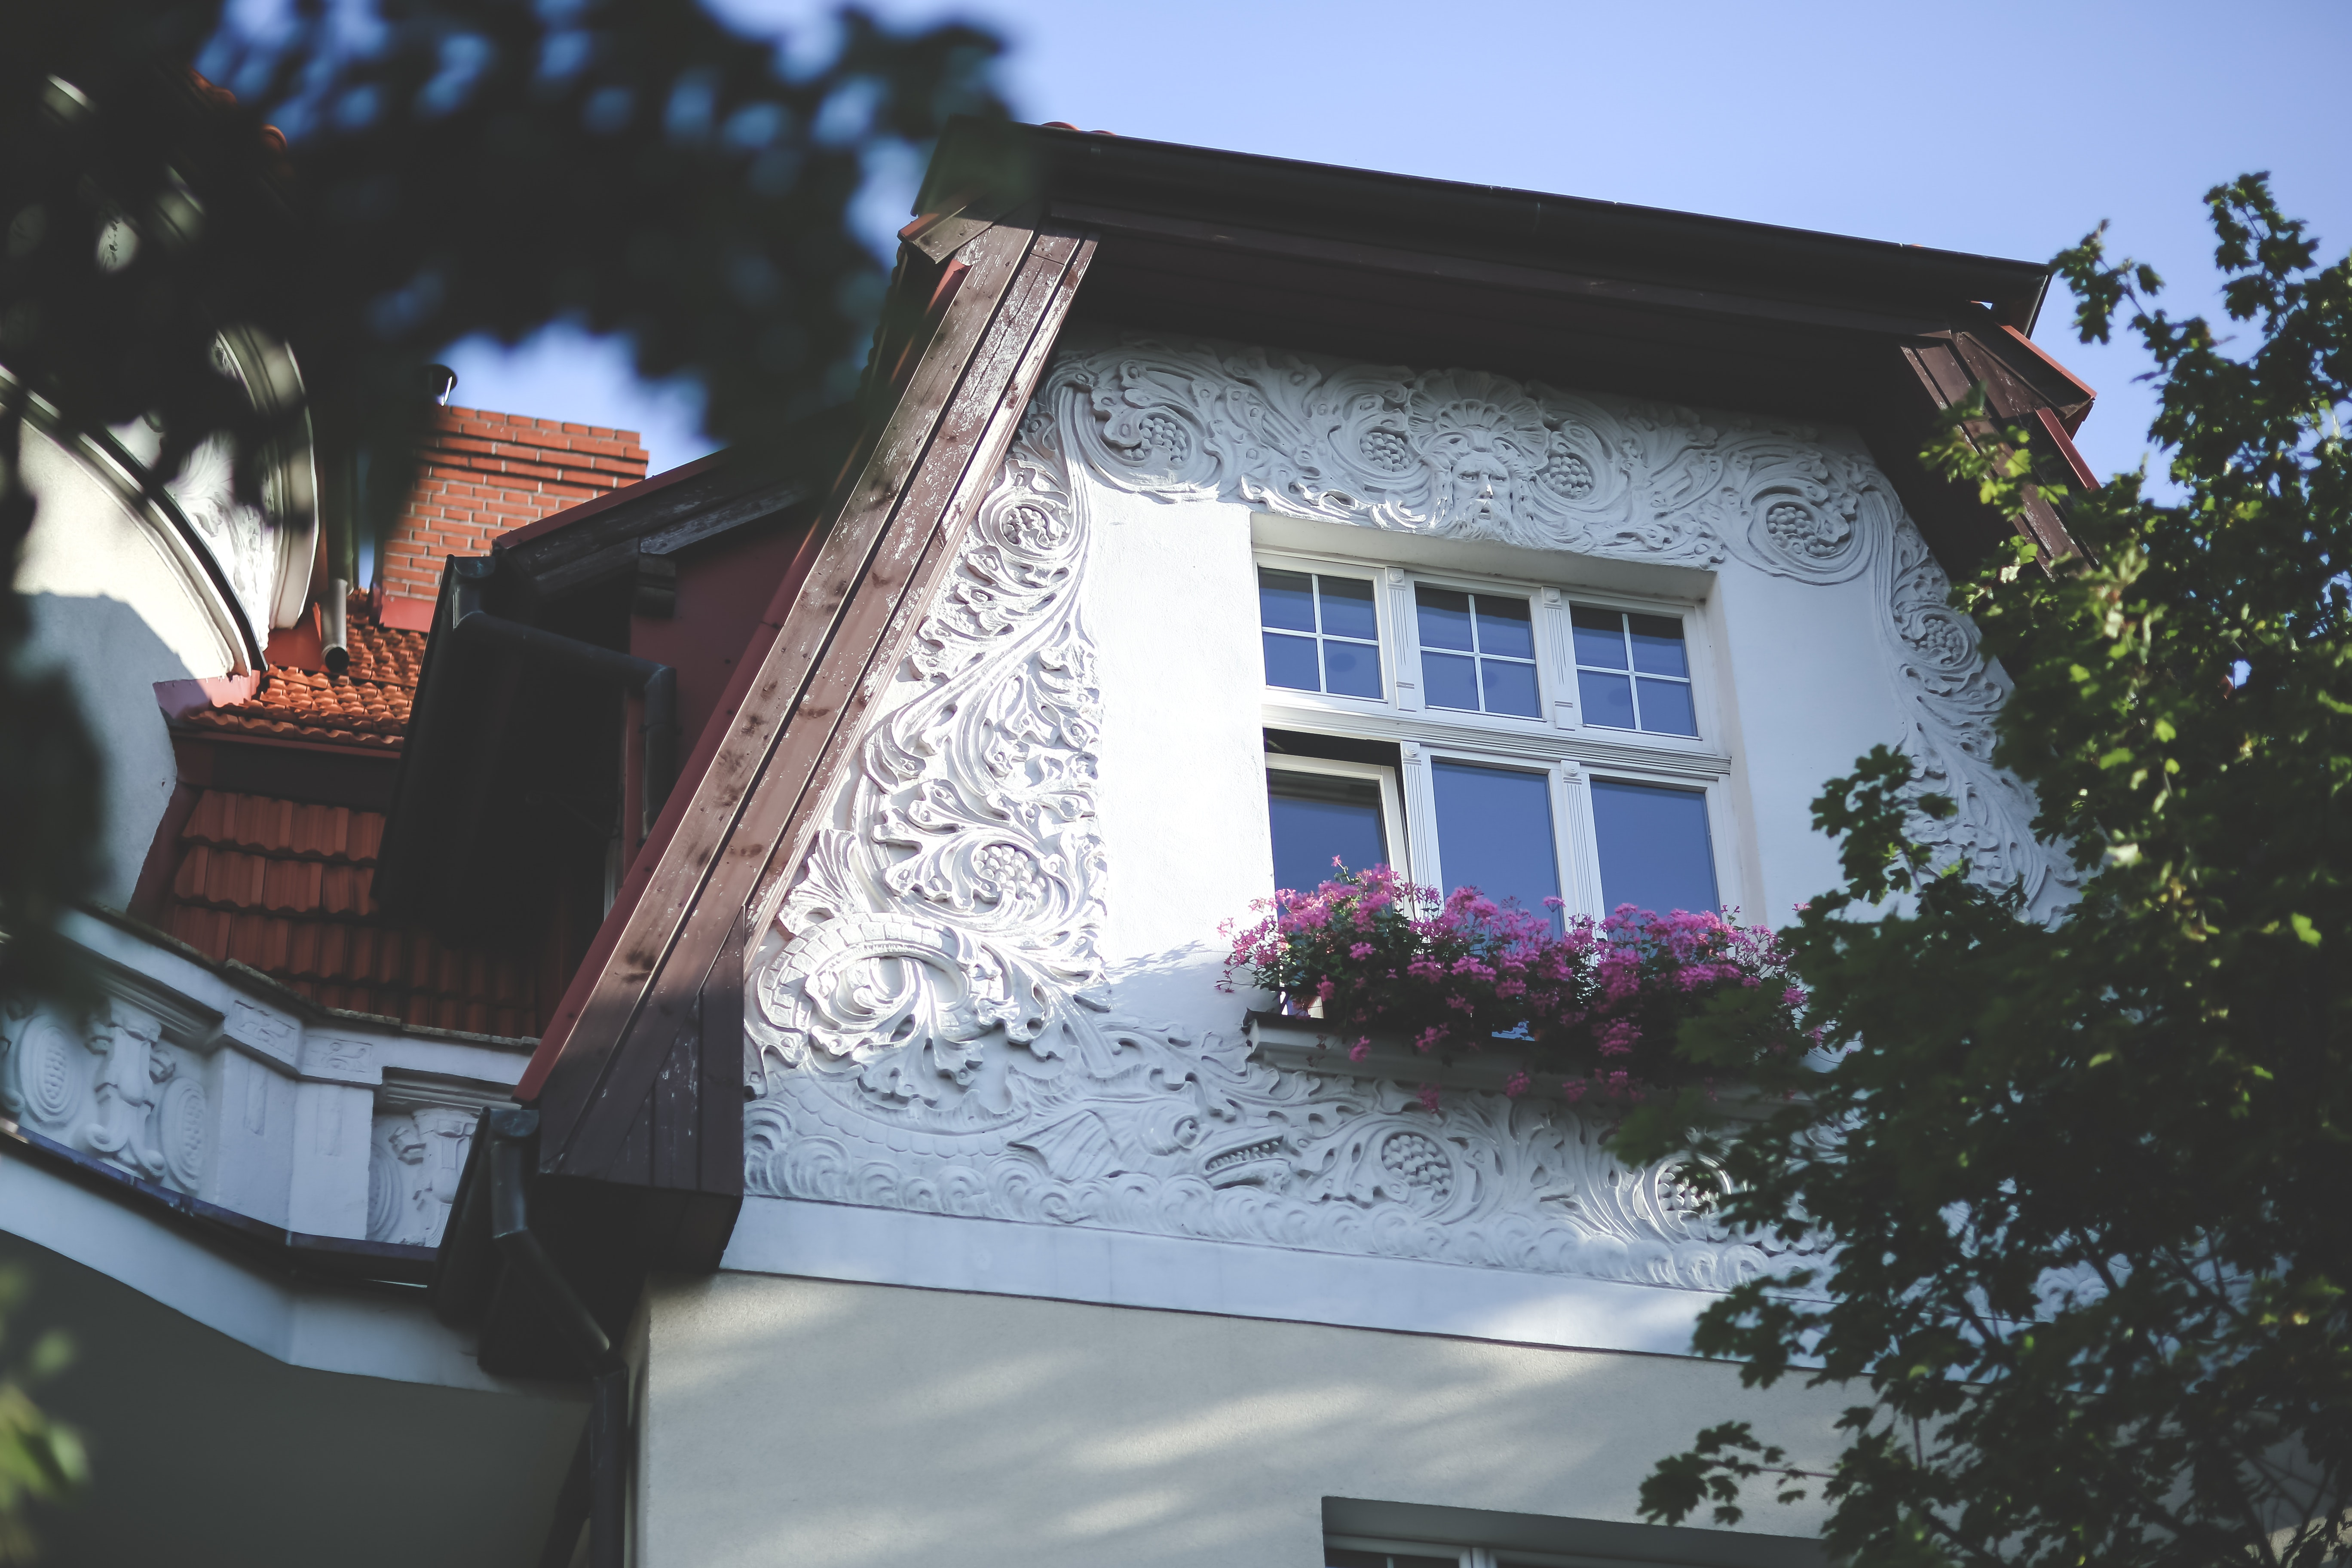 Old building, Outdoors, Wood, Window, White, HQ Photo